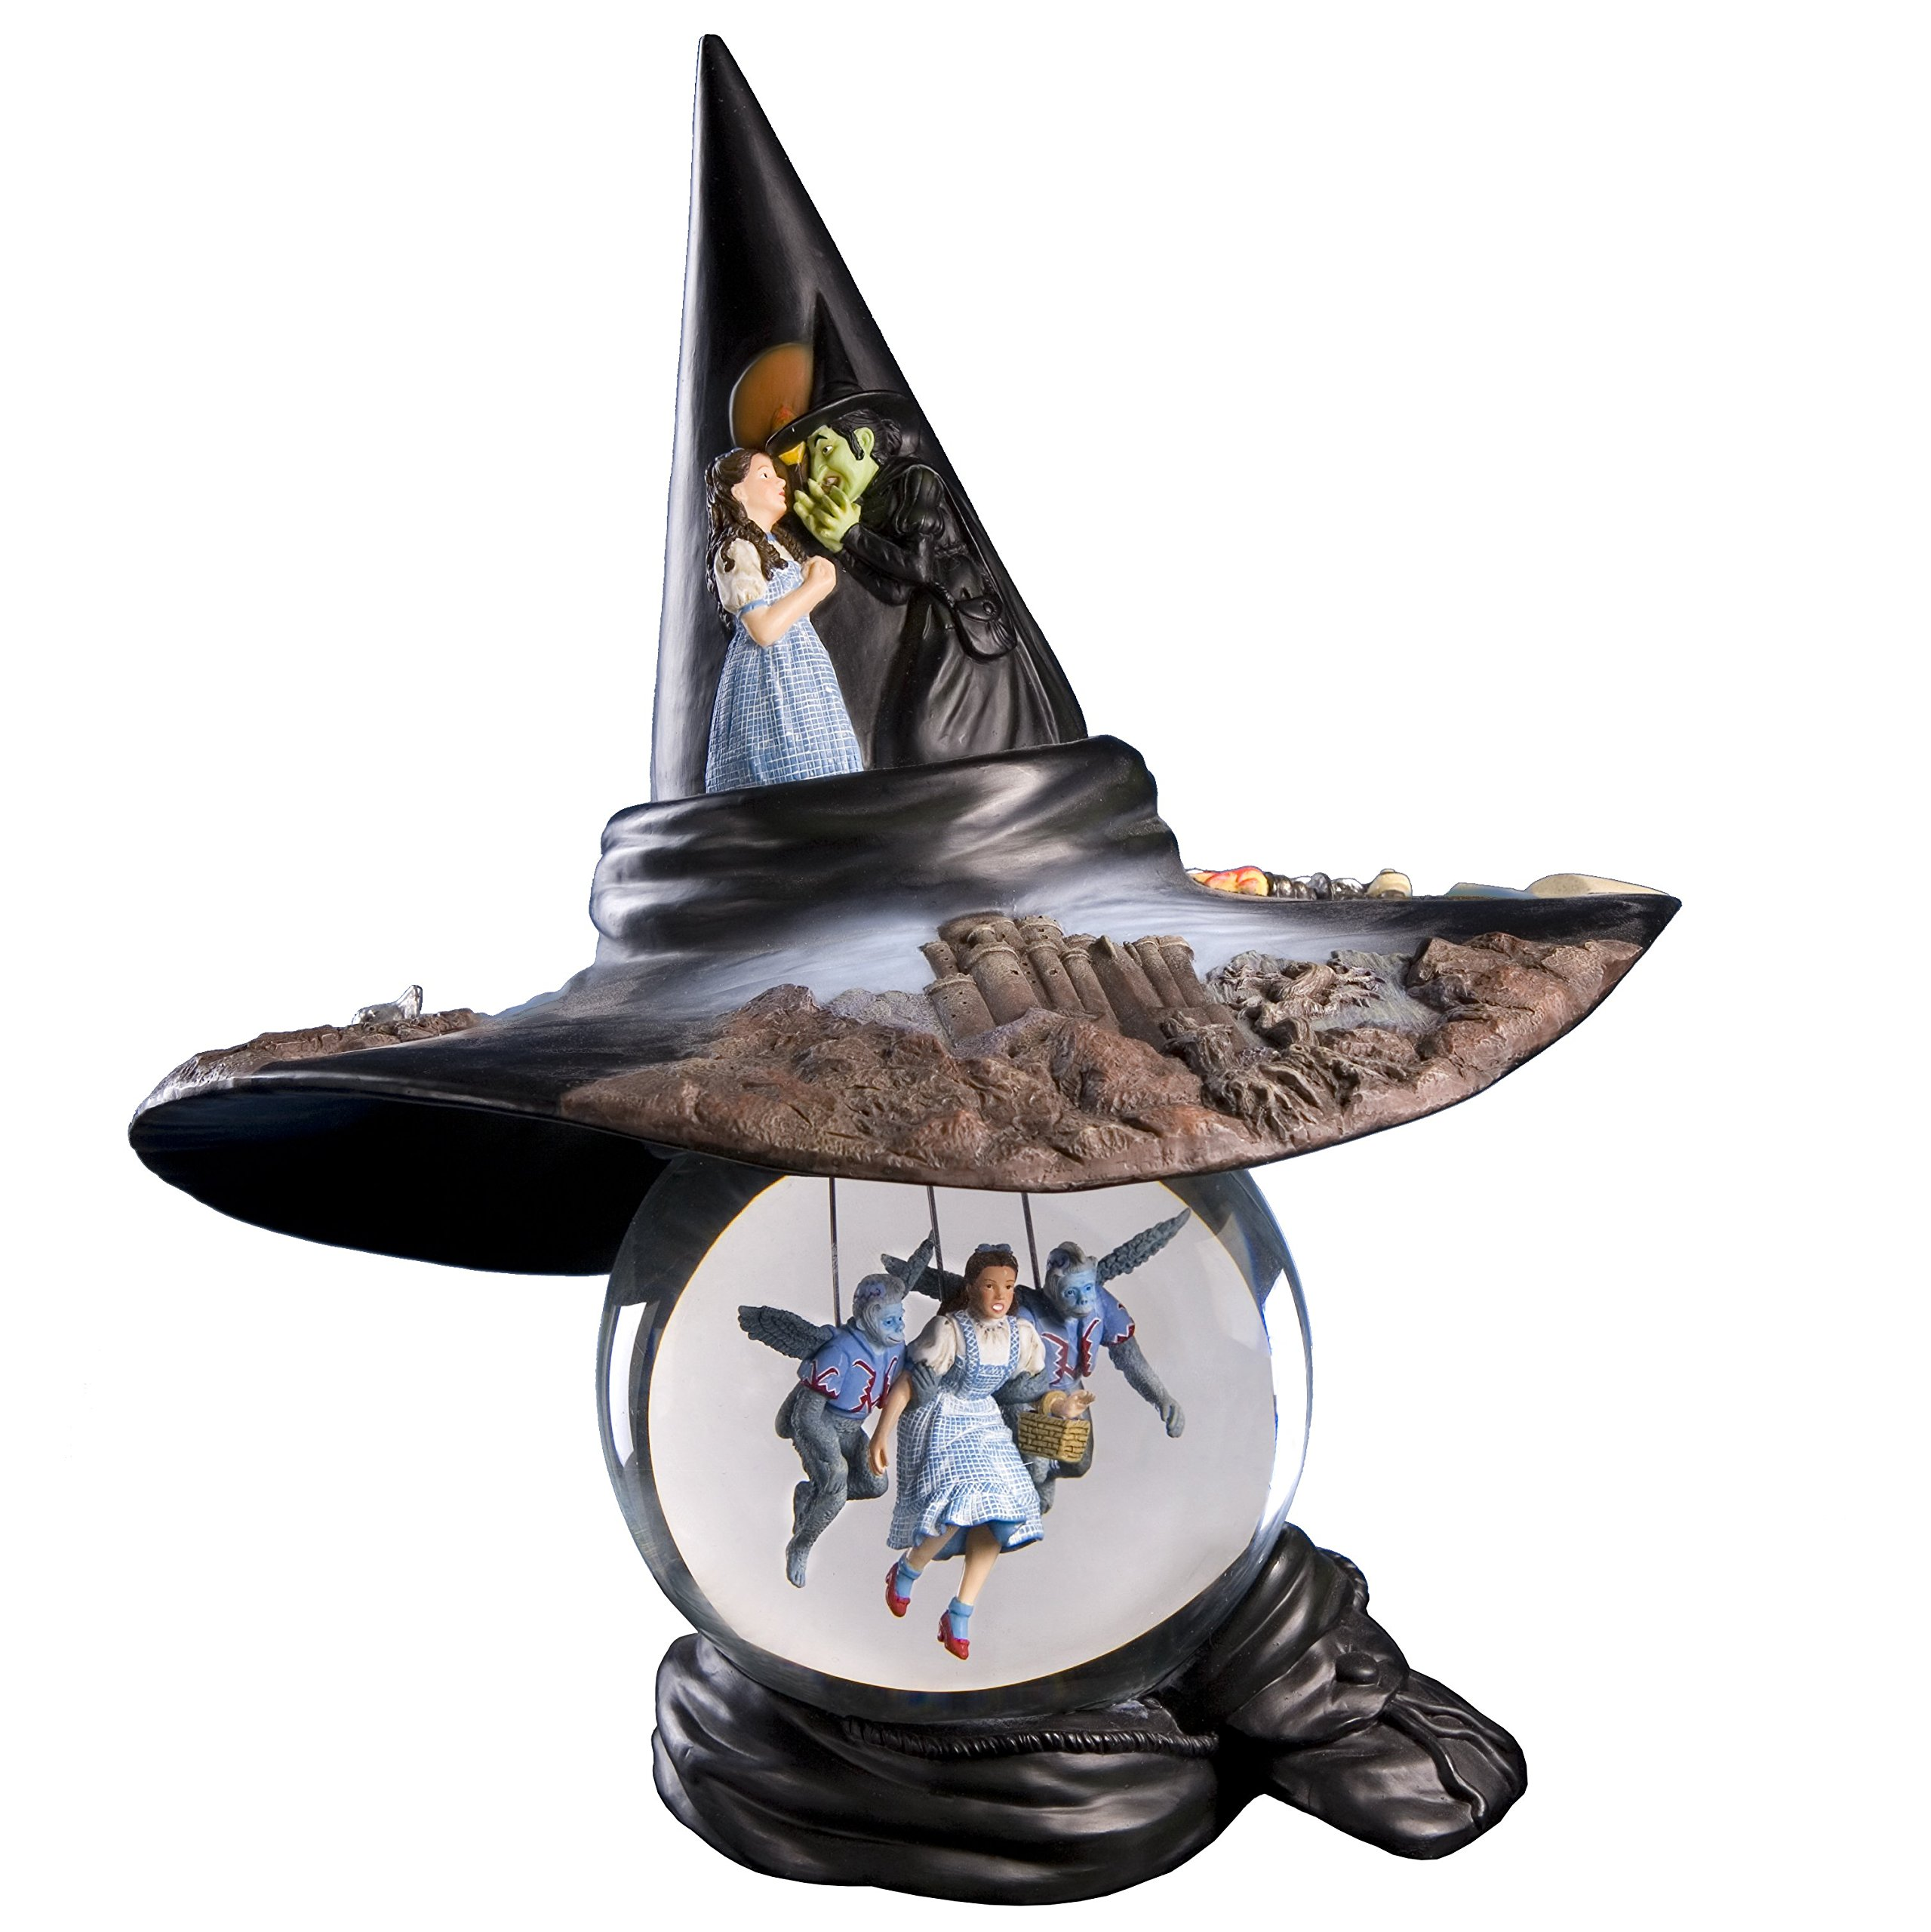 The Wizard of Oz ''Witch Hat'' Water Globe The San Francisco Music Box by The San Francisco Music Box Company